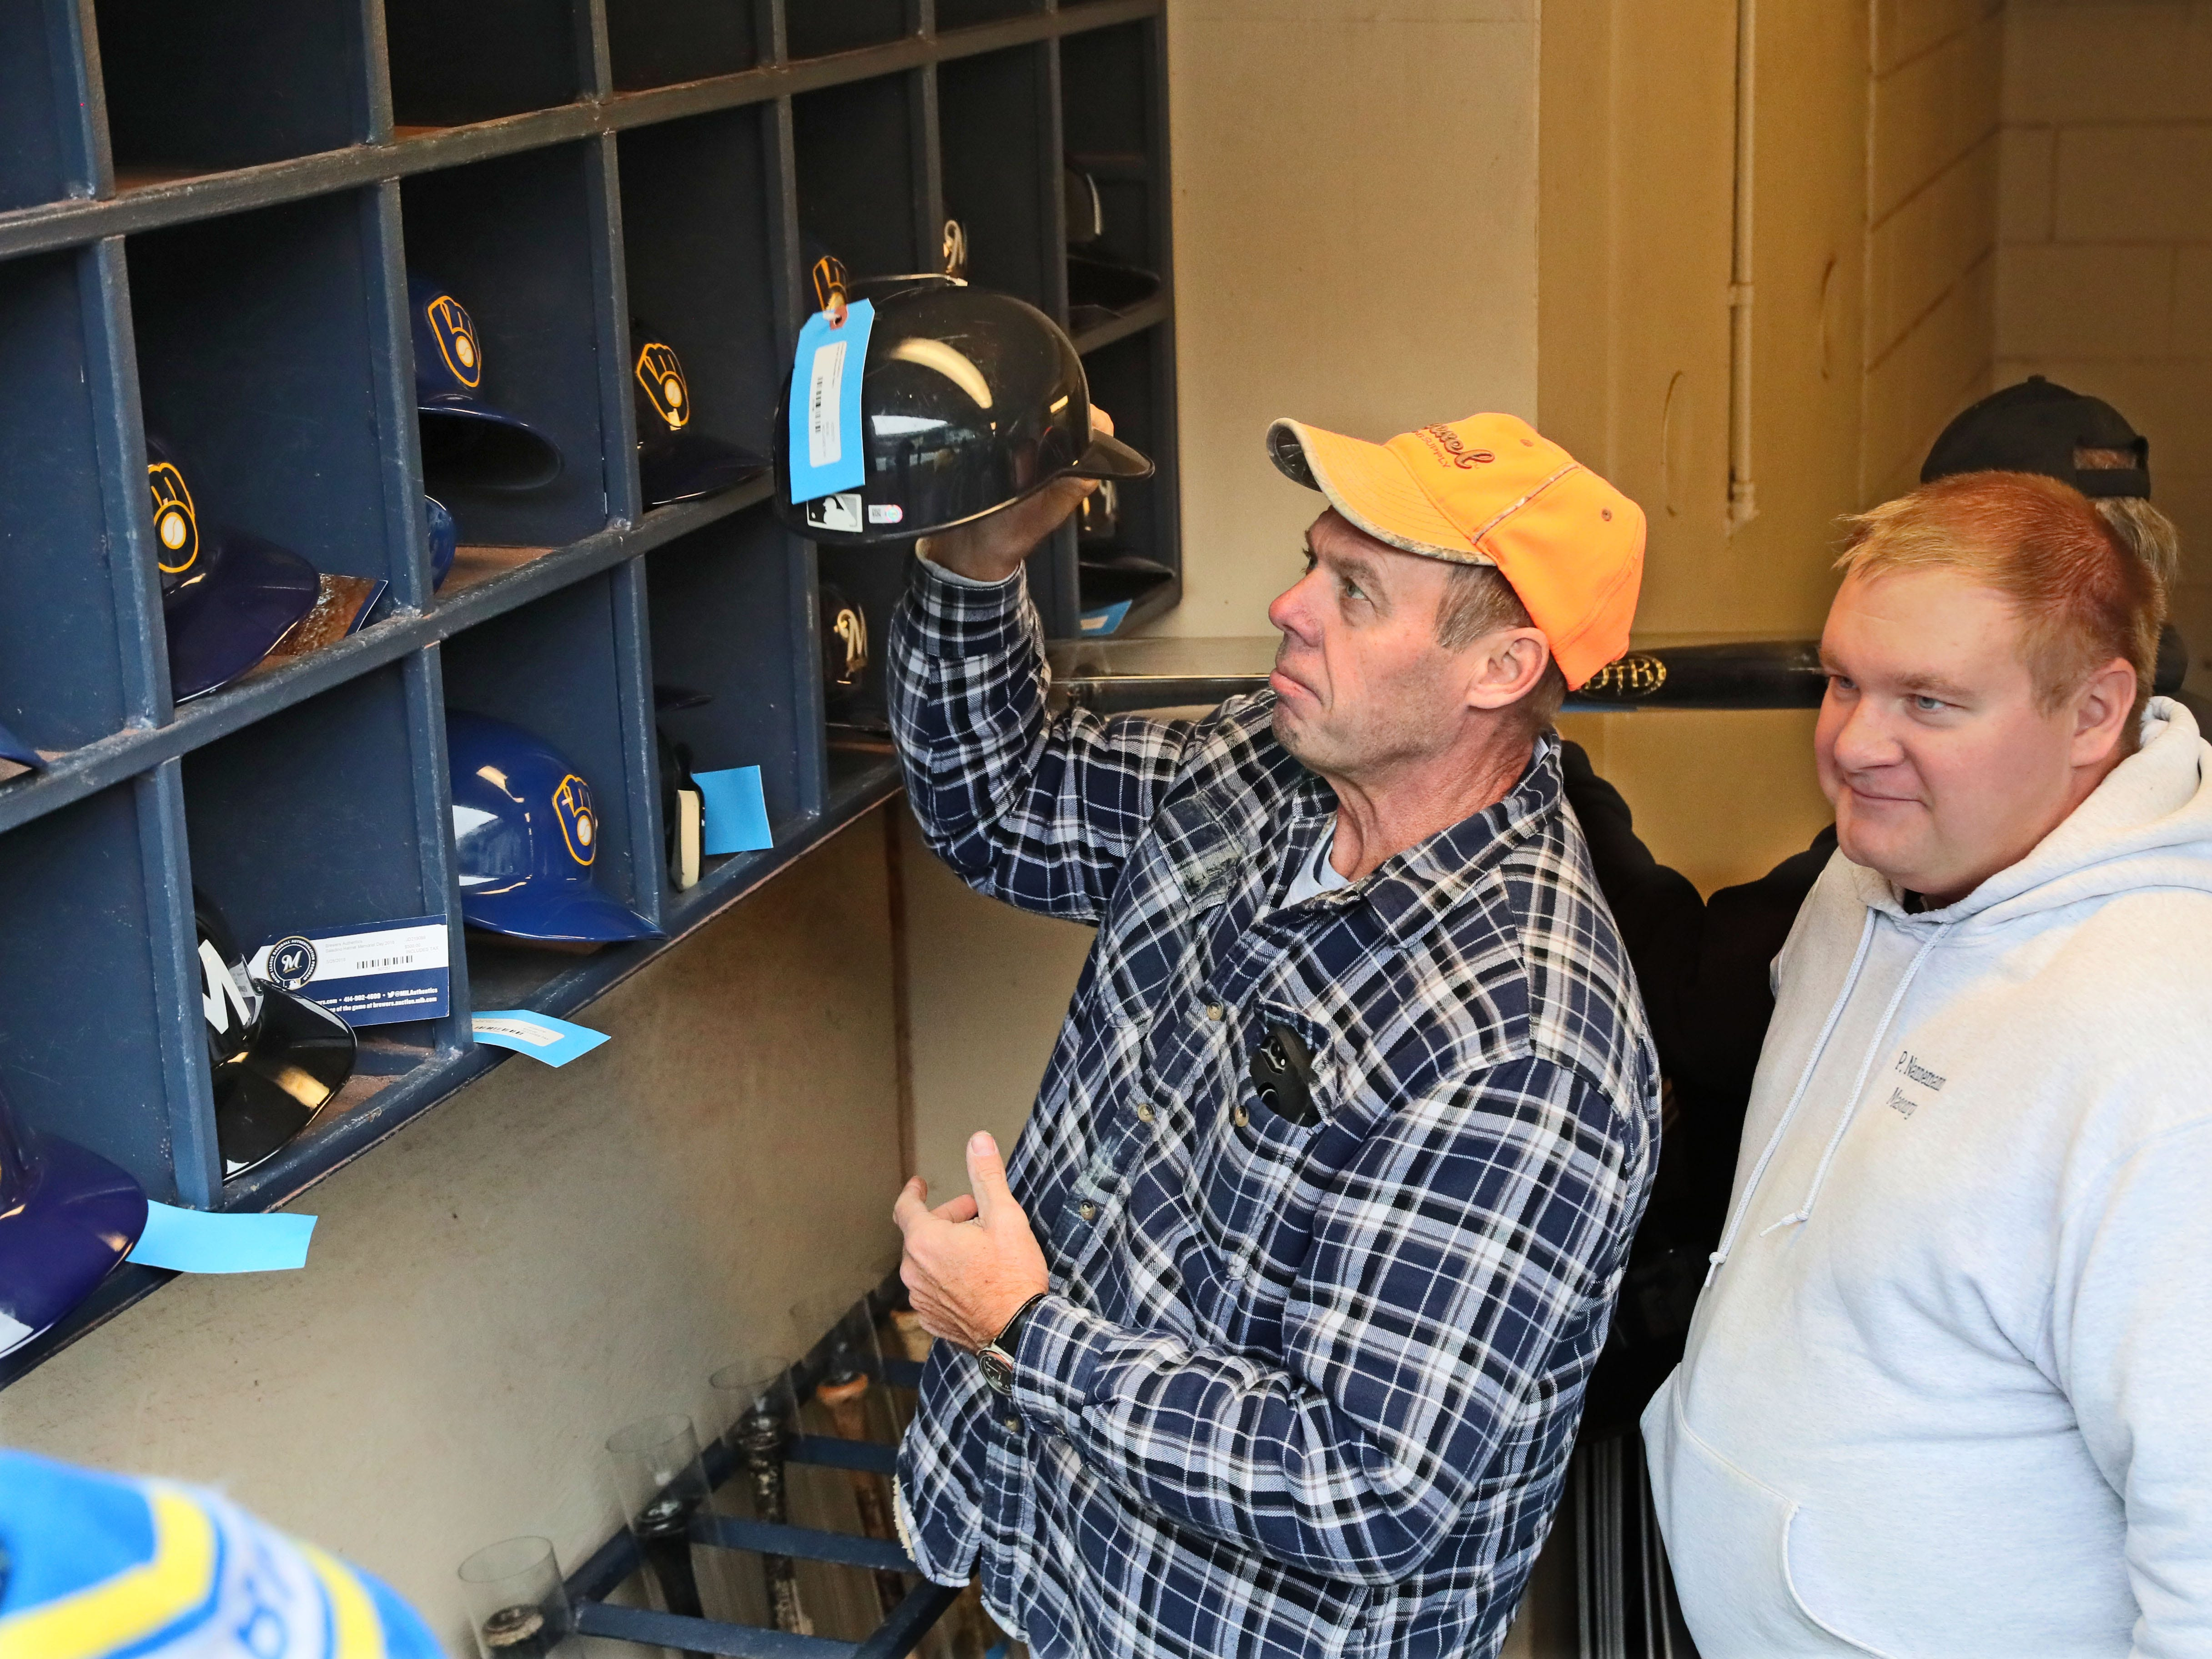 Jim Nannemann (left) and his son Joshua Nannemann, both of Waterford, look at used batting helmets from various games and players that are being sold.